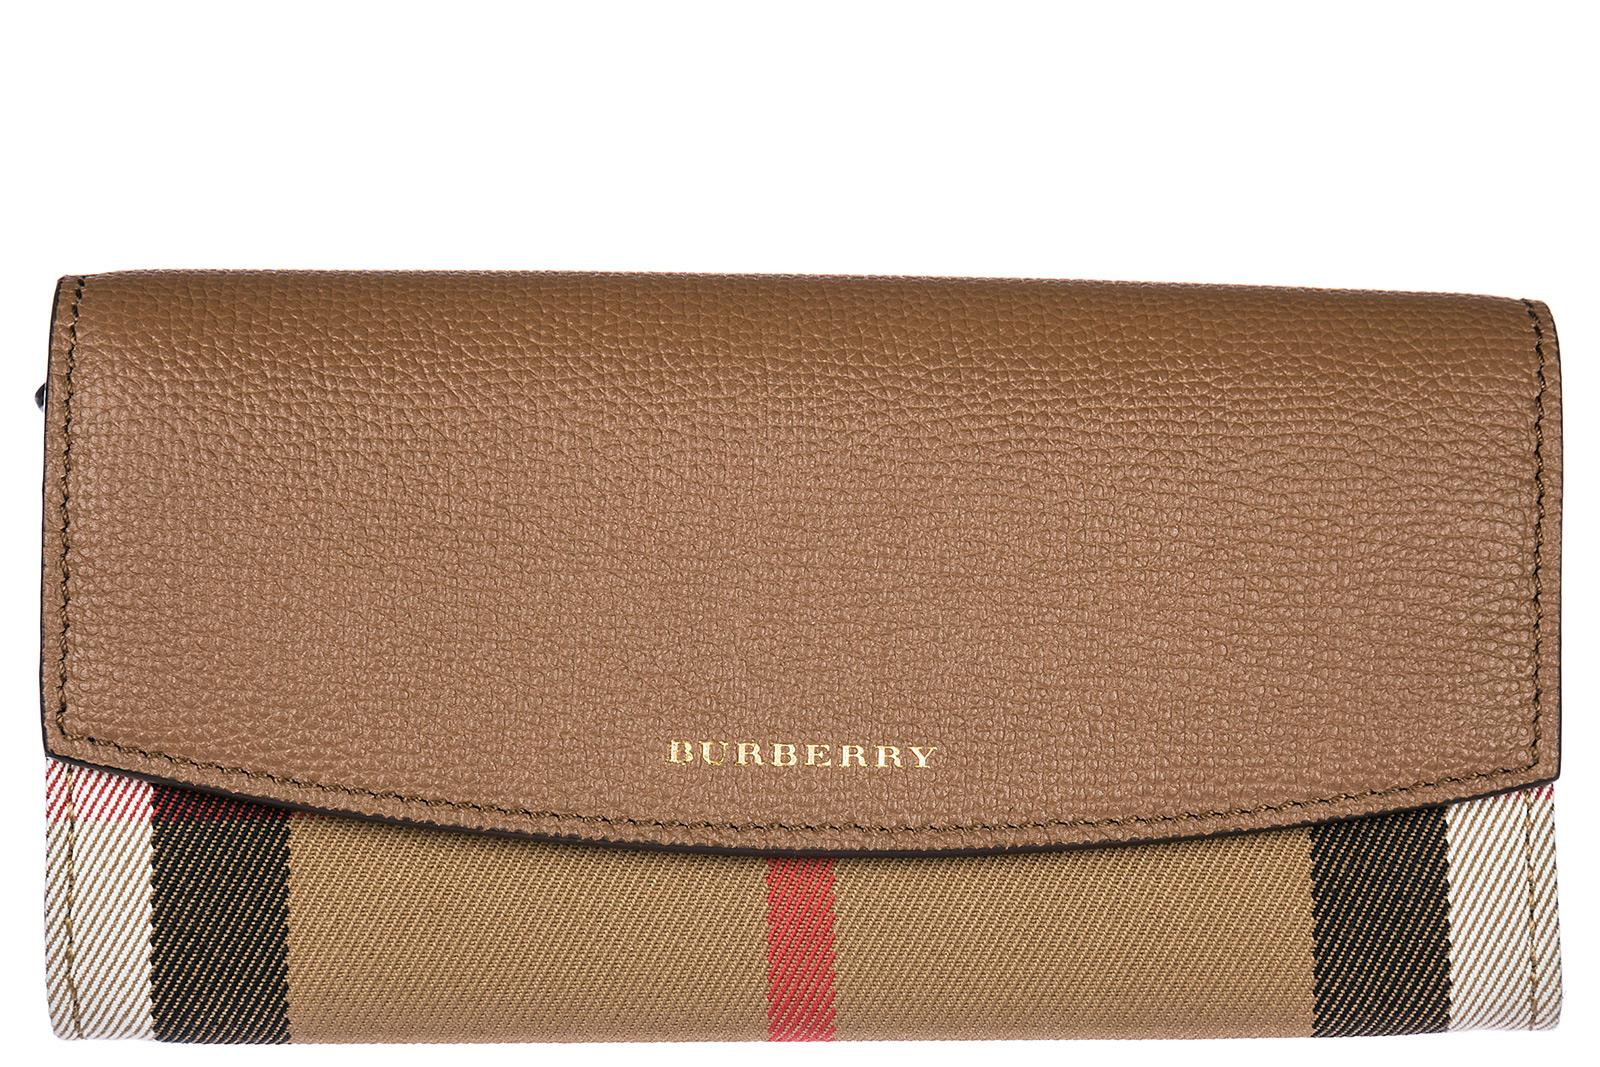 Burberry Women's Wallet Coin Case Holder Purse Card Bifold In Brown